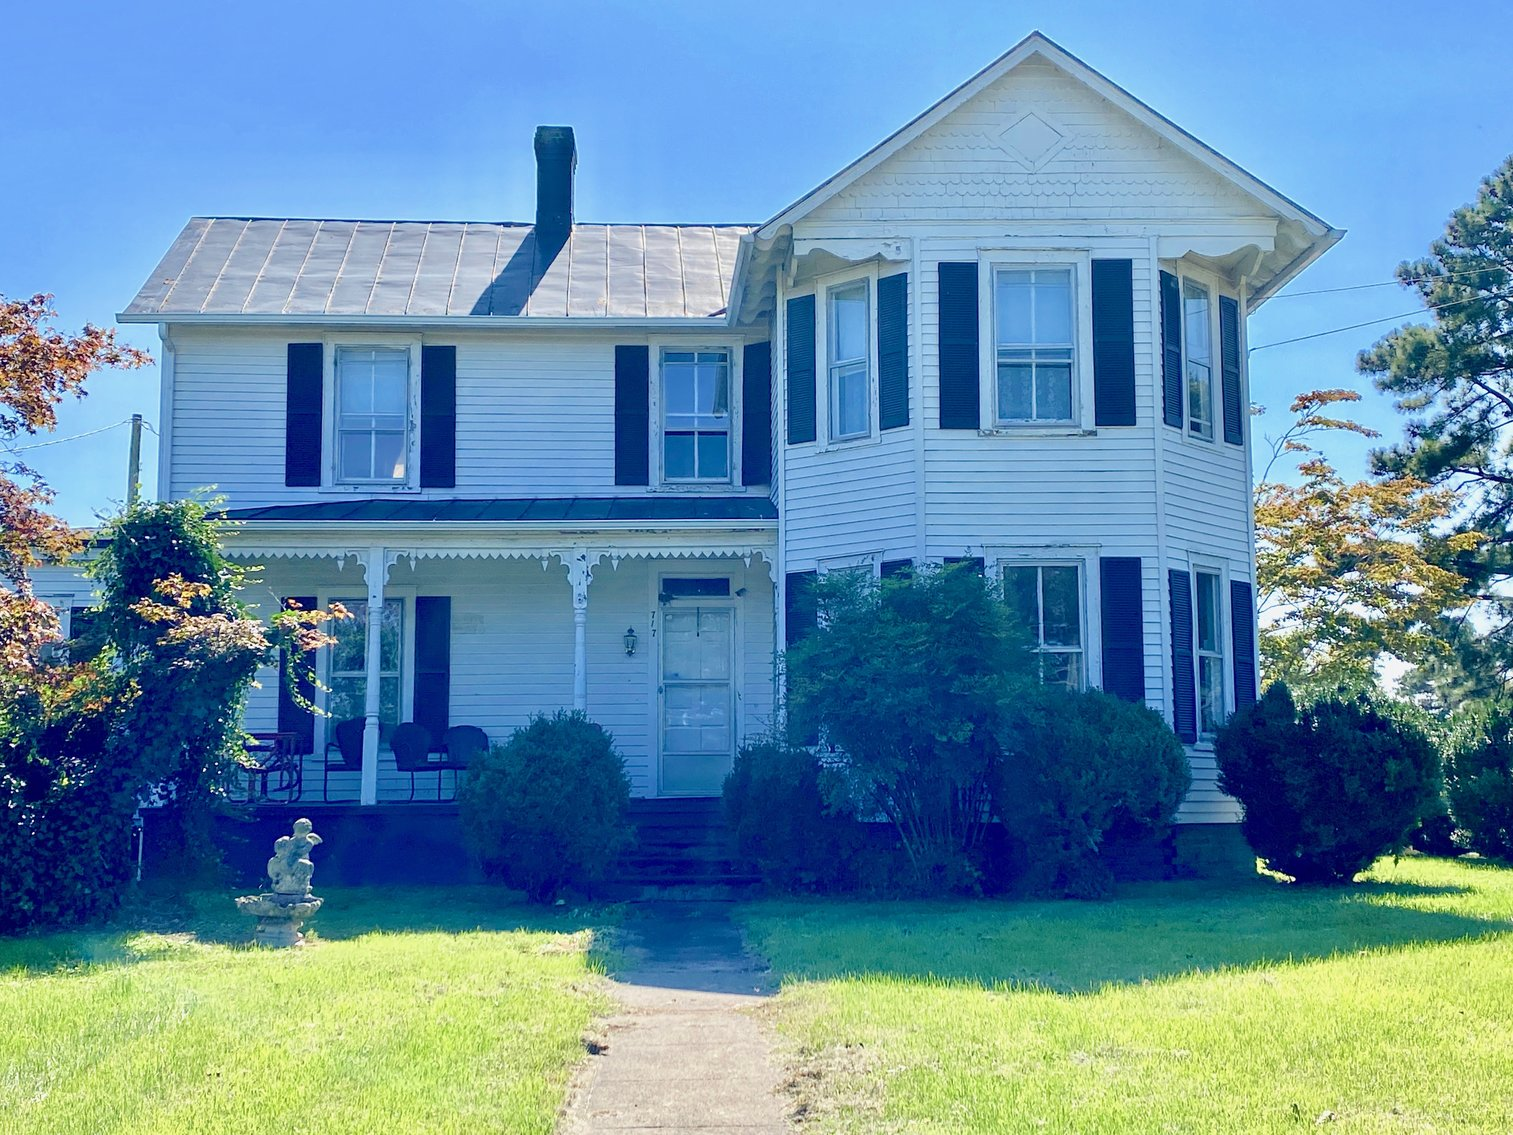 Image for 4 BR/2 BA Home on 1 Acre Lot w/Workshop & 3 Bay Garage Near Downtown Culpeper, VA